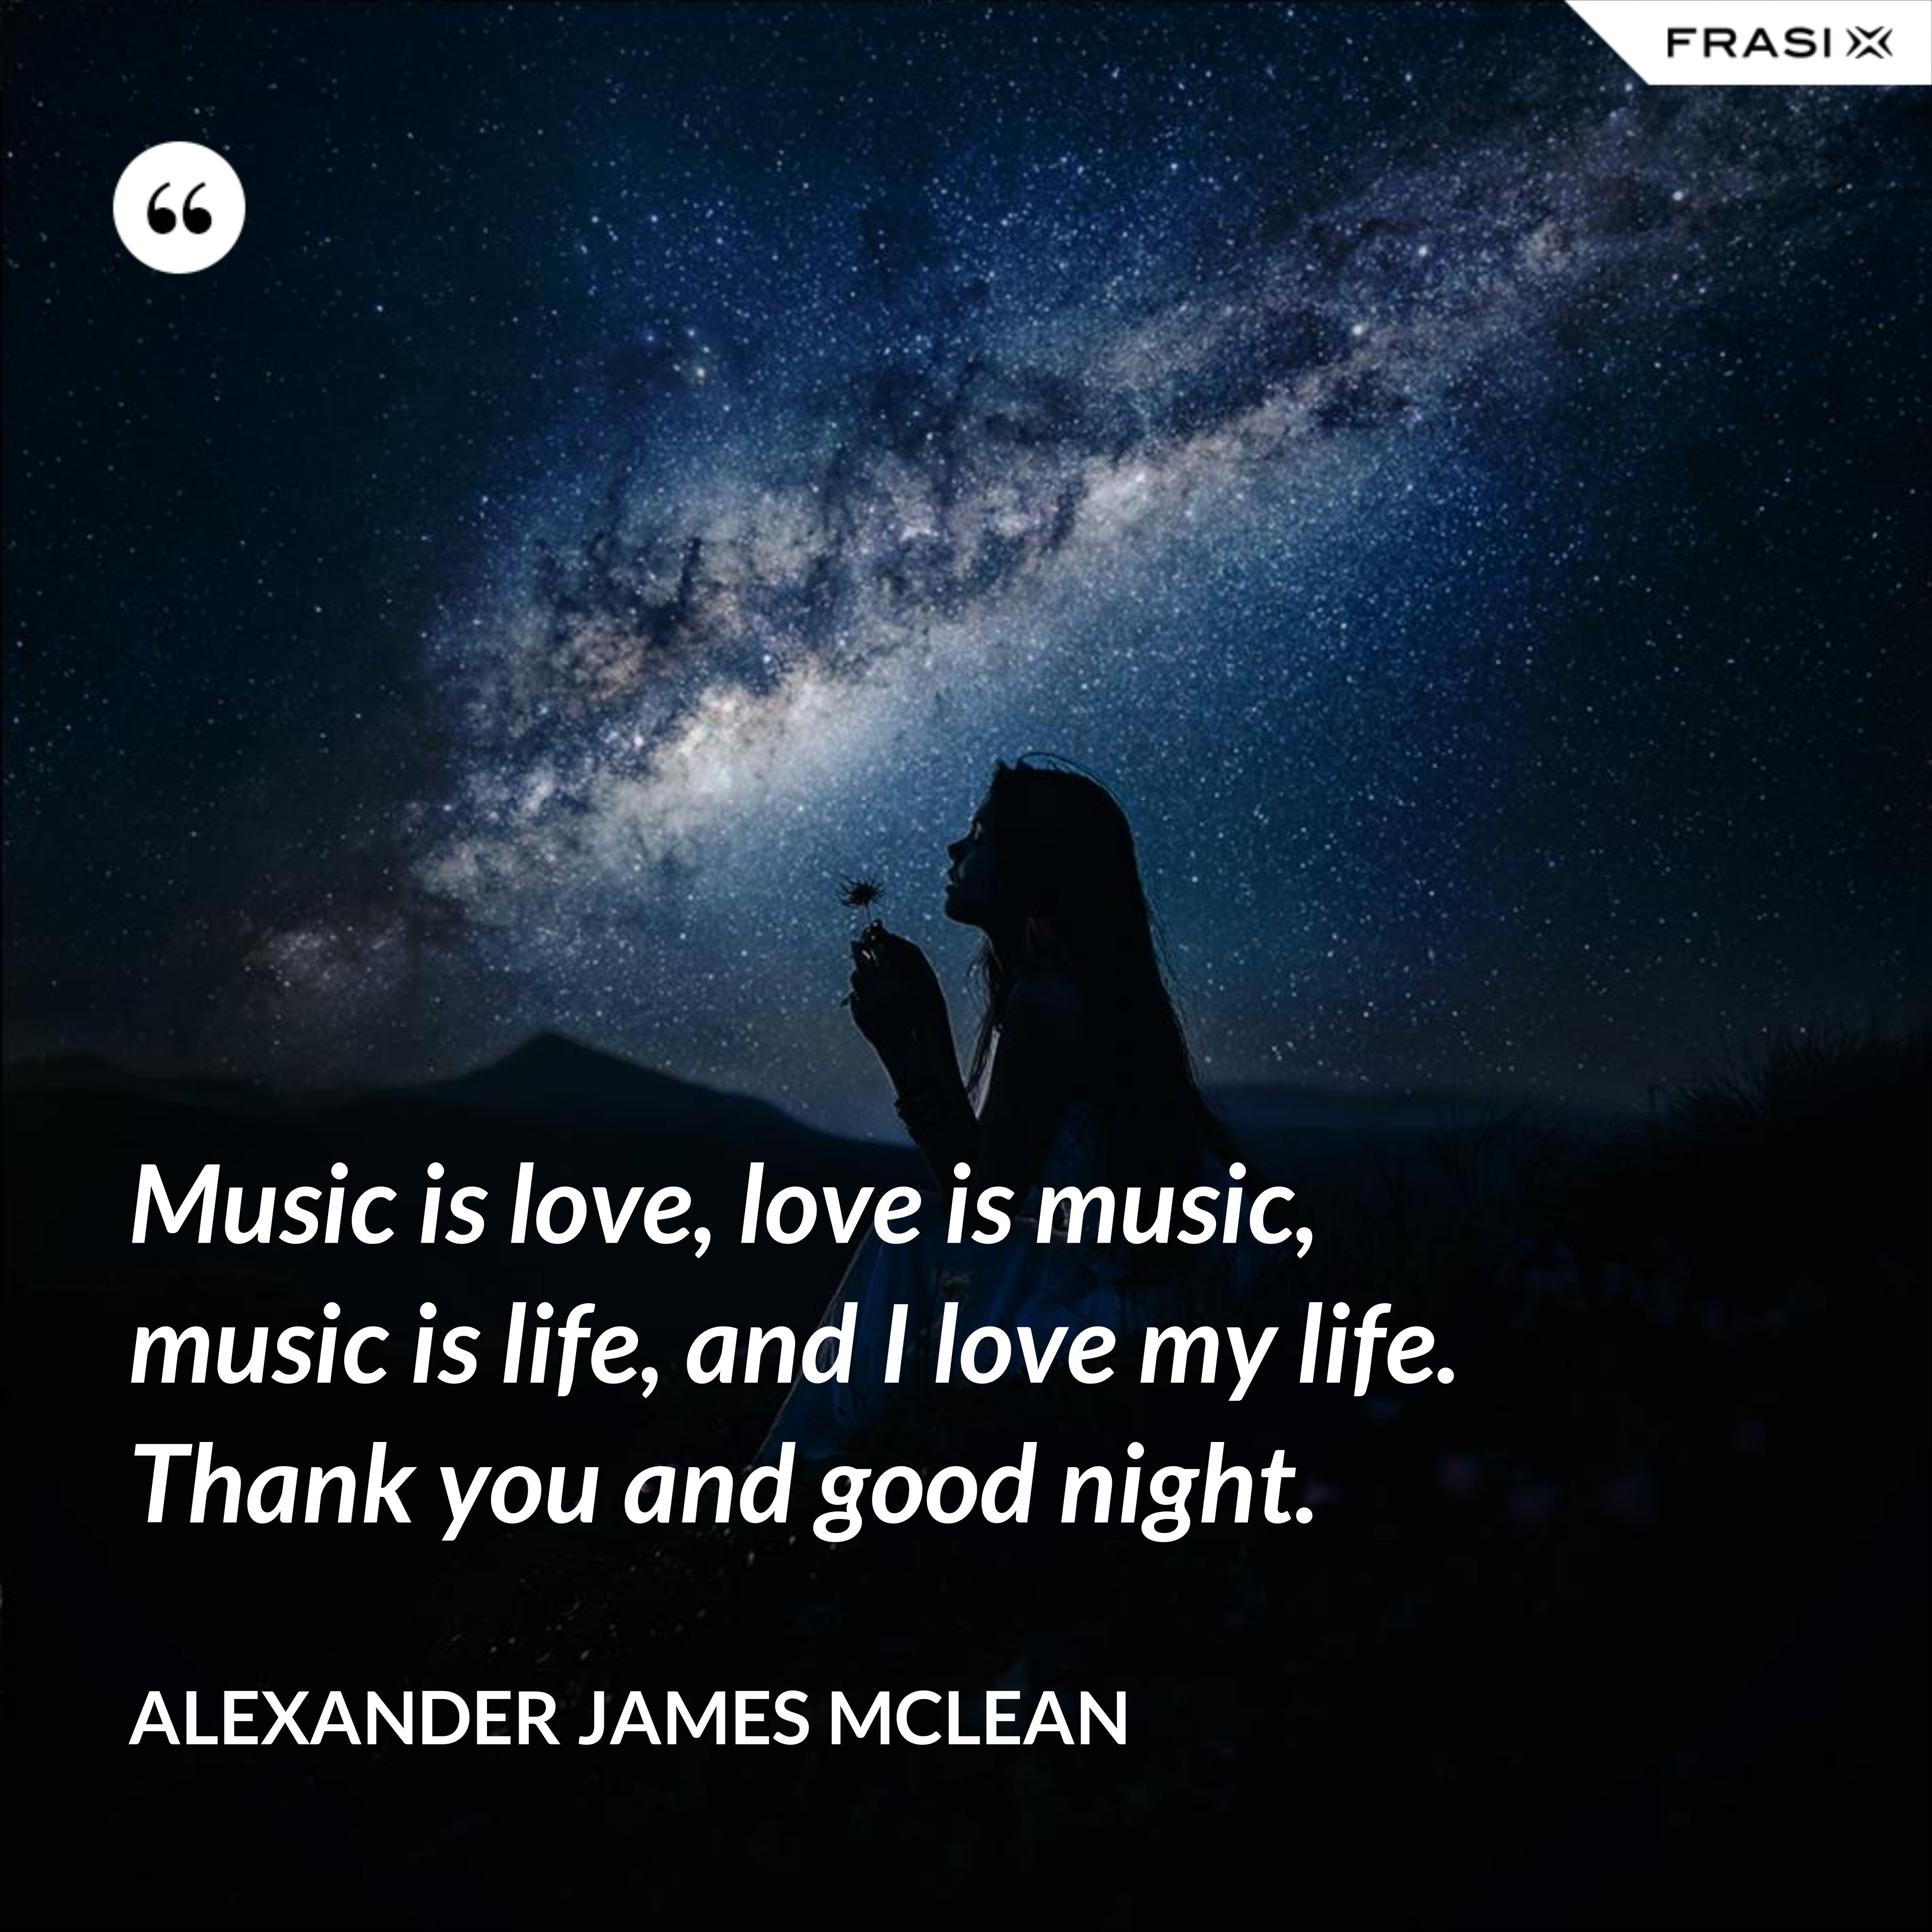 Music is love, love is music, music is life, and I love my life. Thank you and good night. - Alexander James McLean